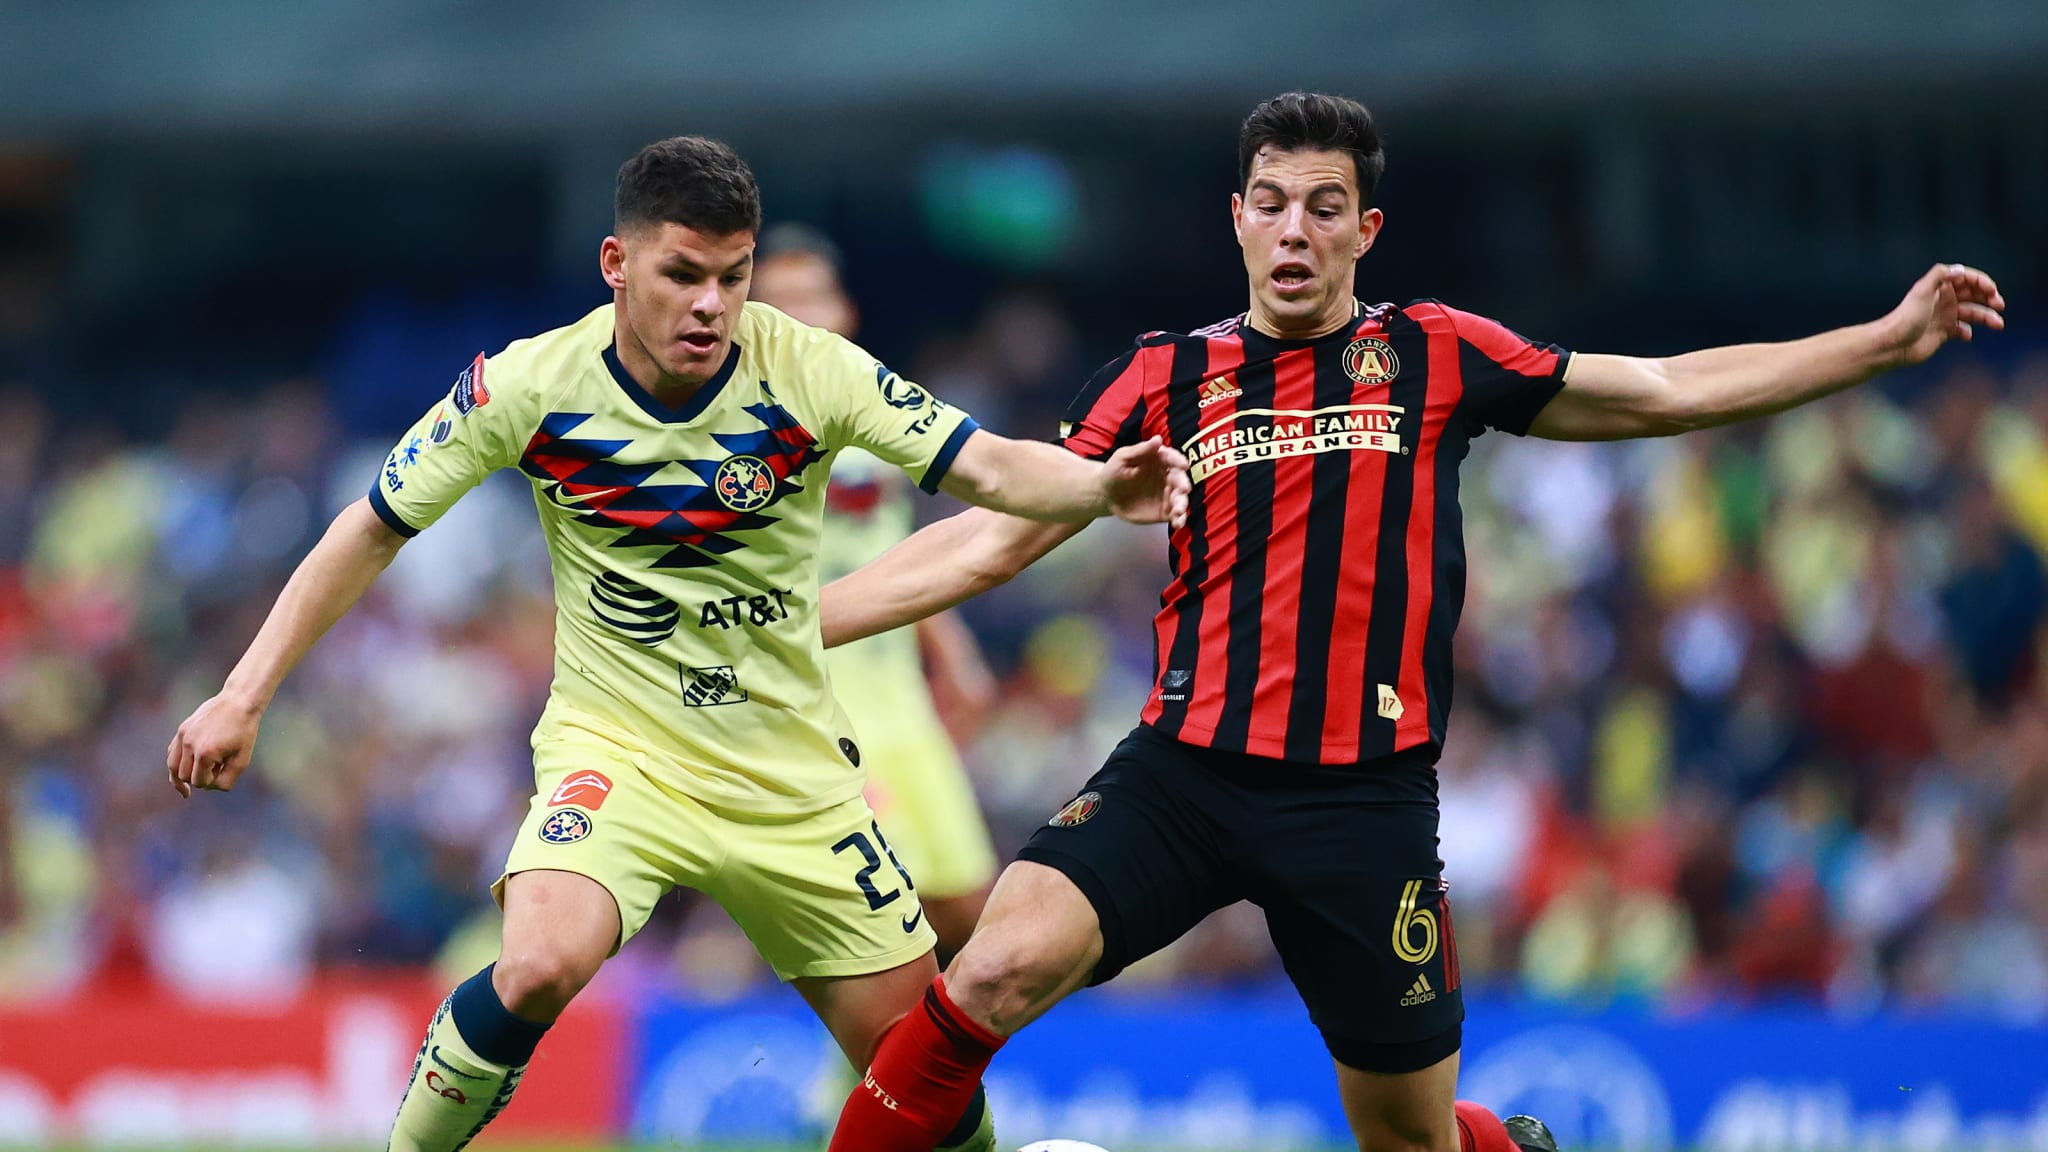 Richard Sanchez of America struggles for the ball against Fernando Meza of Atlanta United